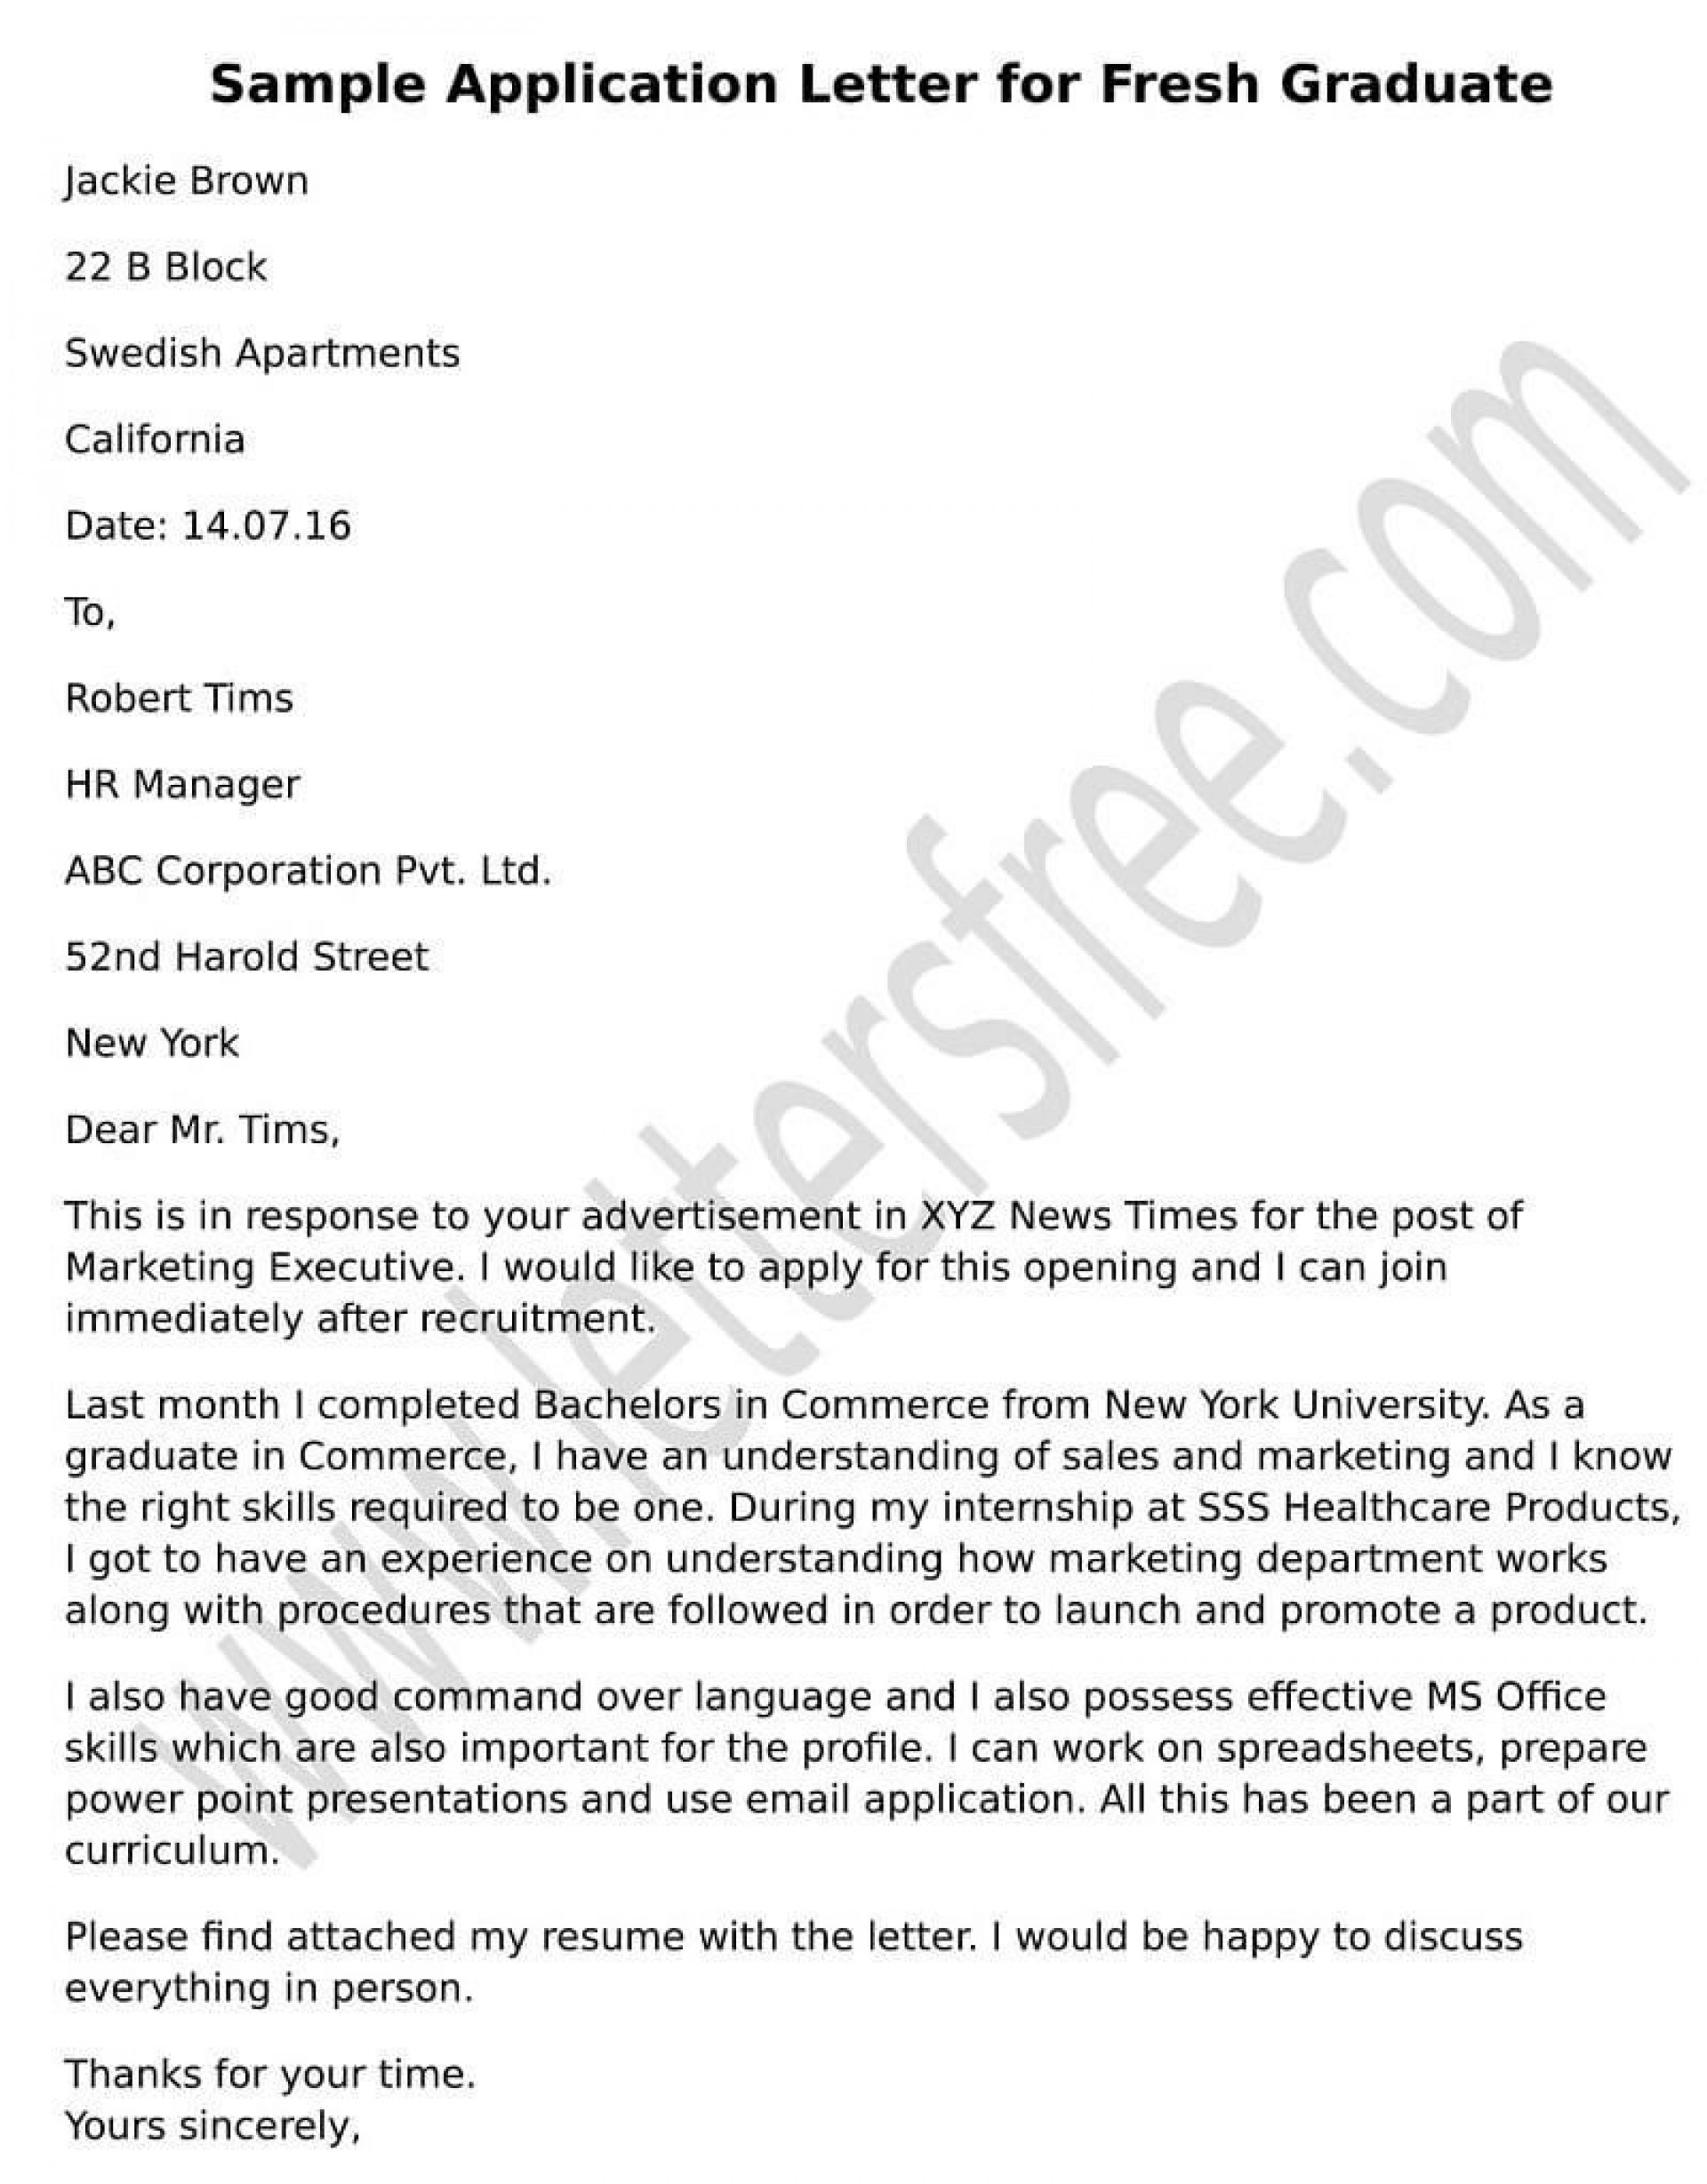 002 Wonderful Cover Letter Sample Template For Fresh Graduate In Marketing High Def 1920